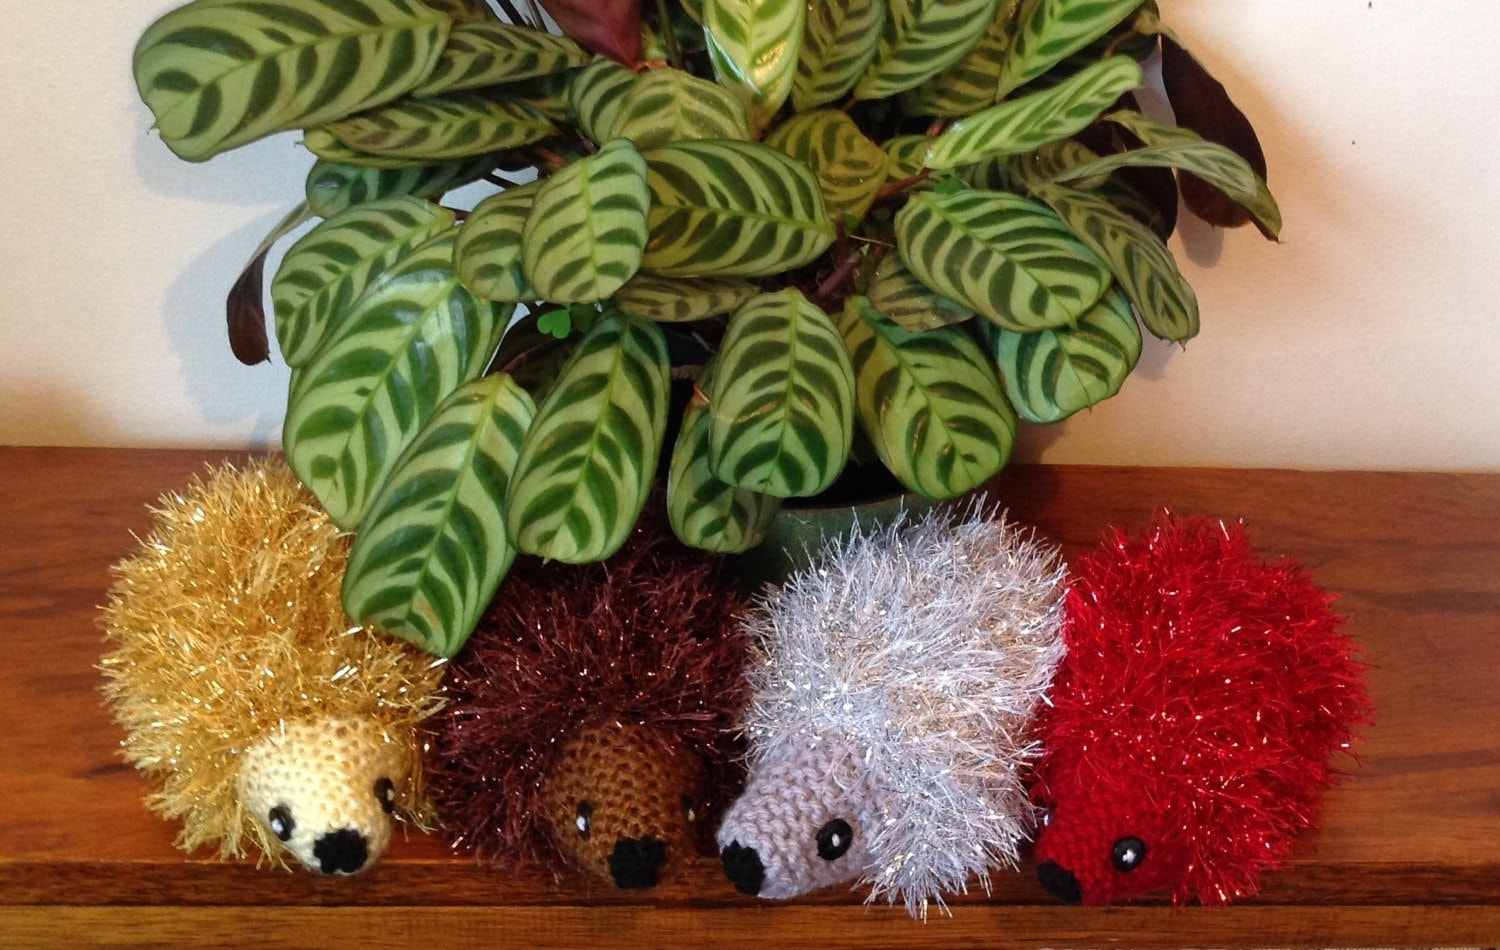 Sparkly Hedgehog Knitting Pattern : Sparkly Hedgehog Ornament. Knitted Tinsel Hedgehog